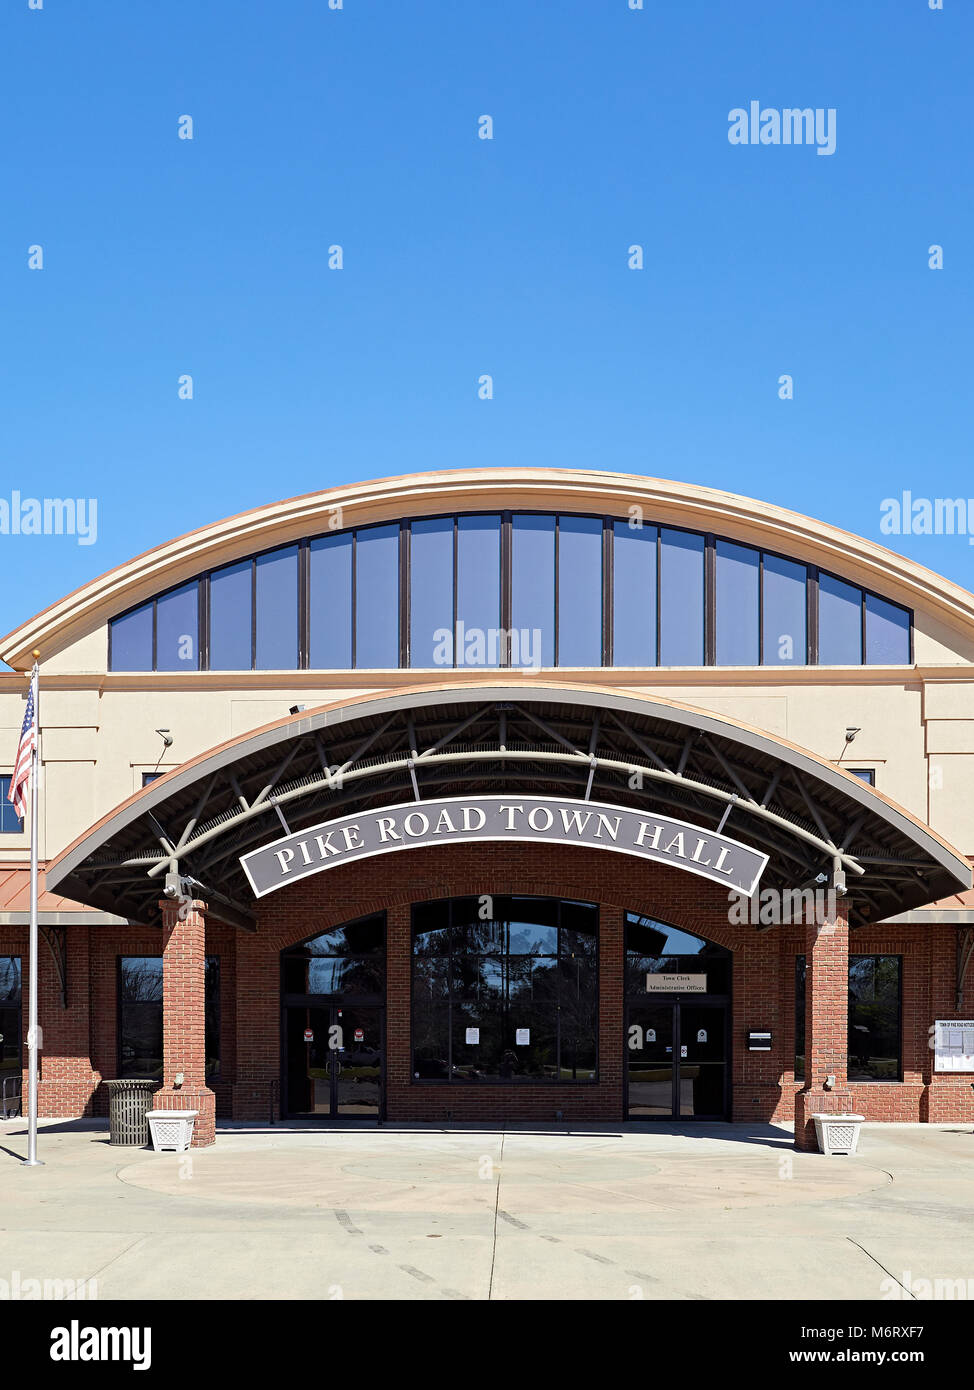 Pike Road Town Hall entrance in the small town of Pike Road, Alabama, USA. - Stock Image